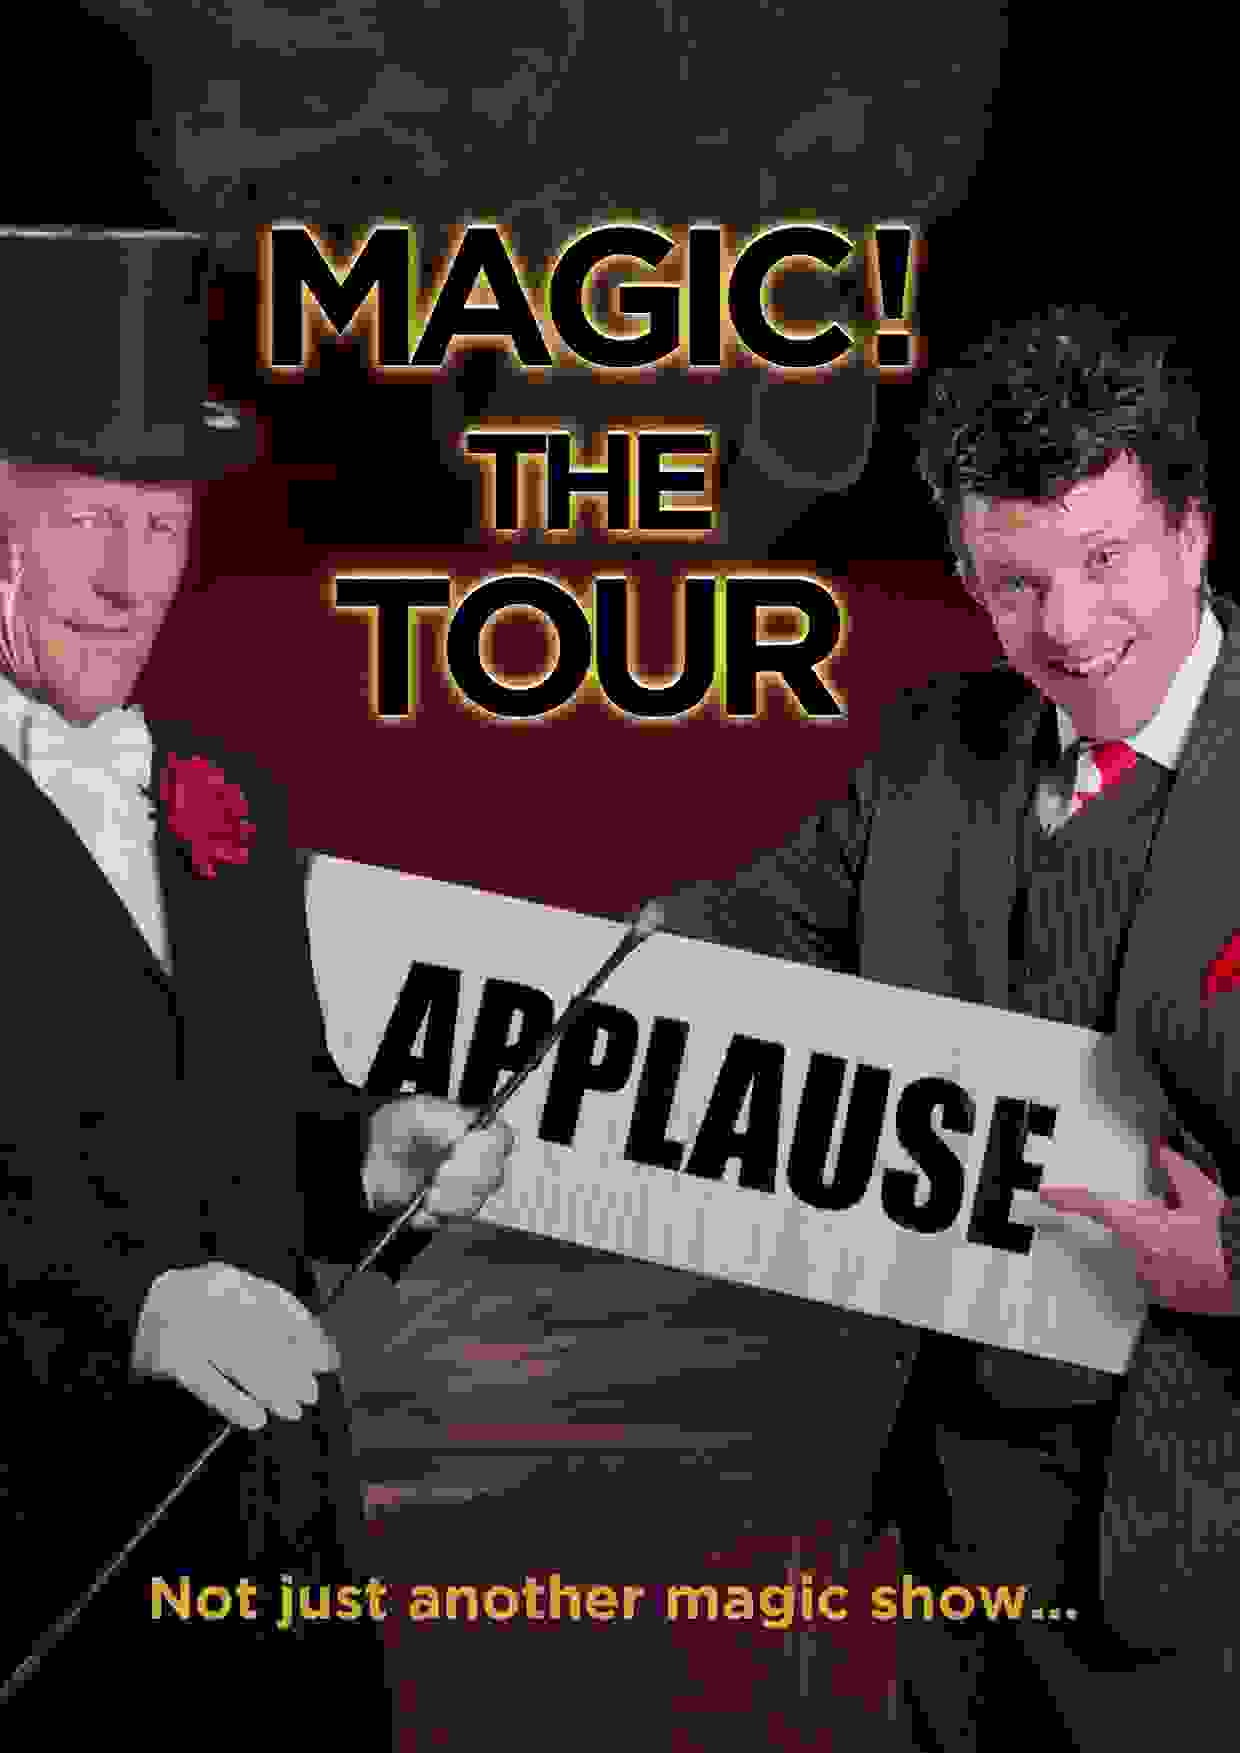 MAGIC! THE TOUR